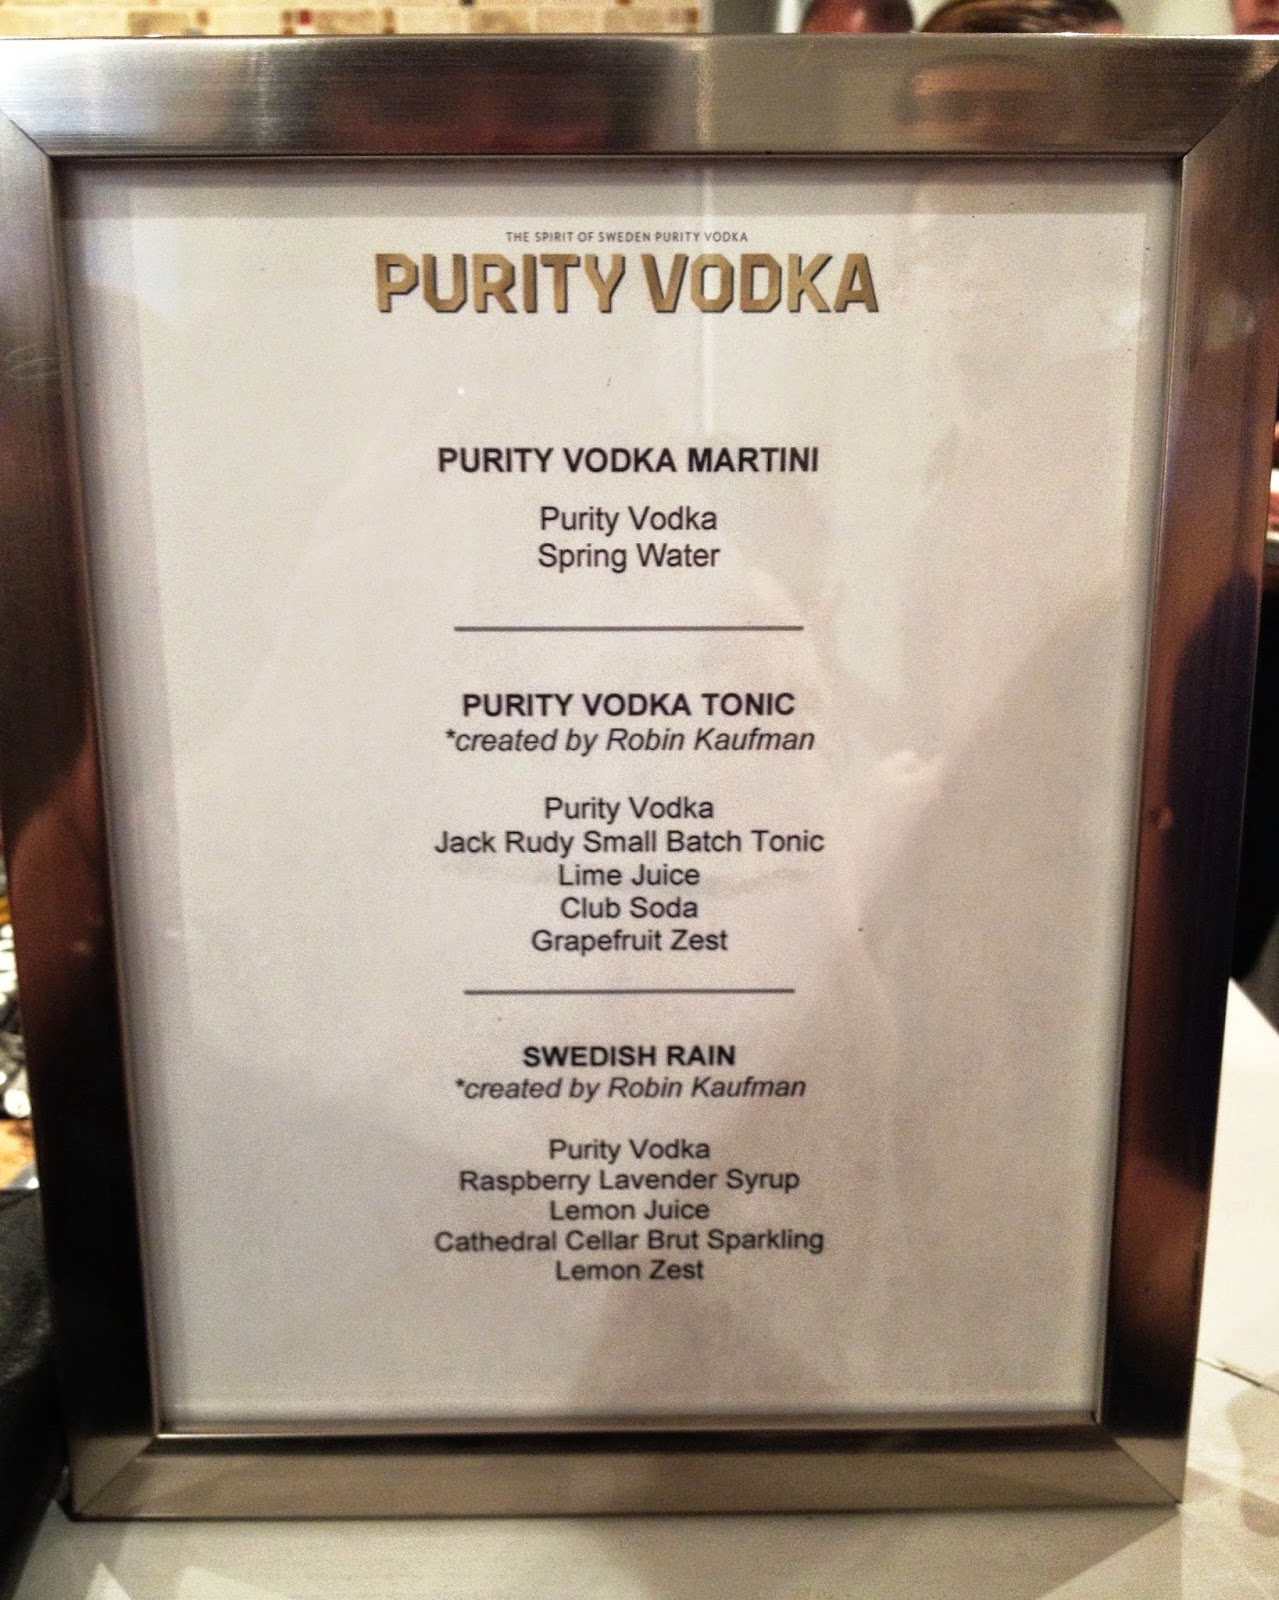 Purity Vodka Tasting Drink Menu